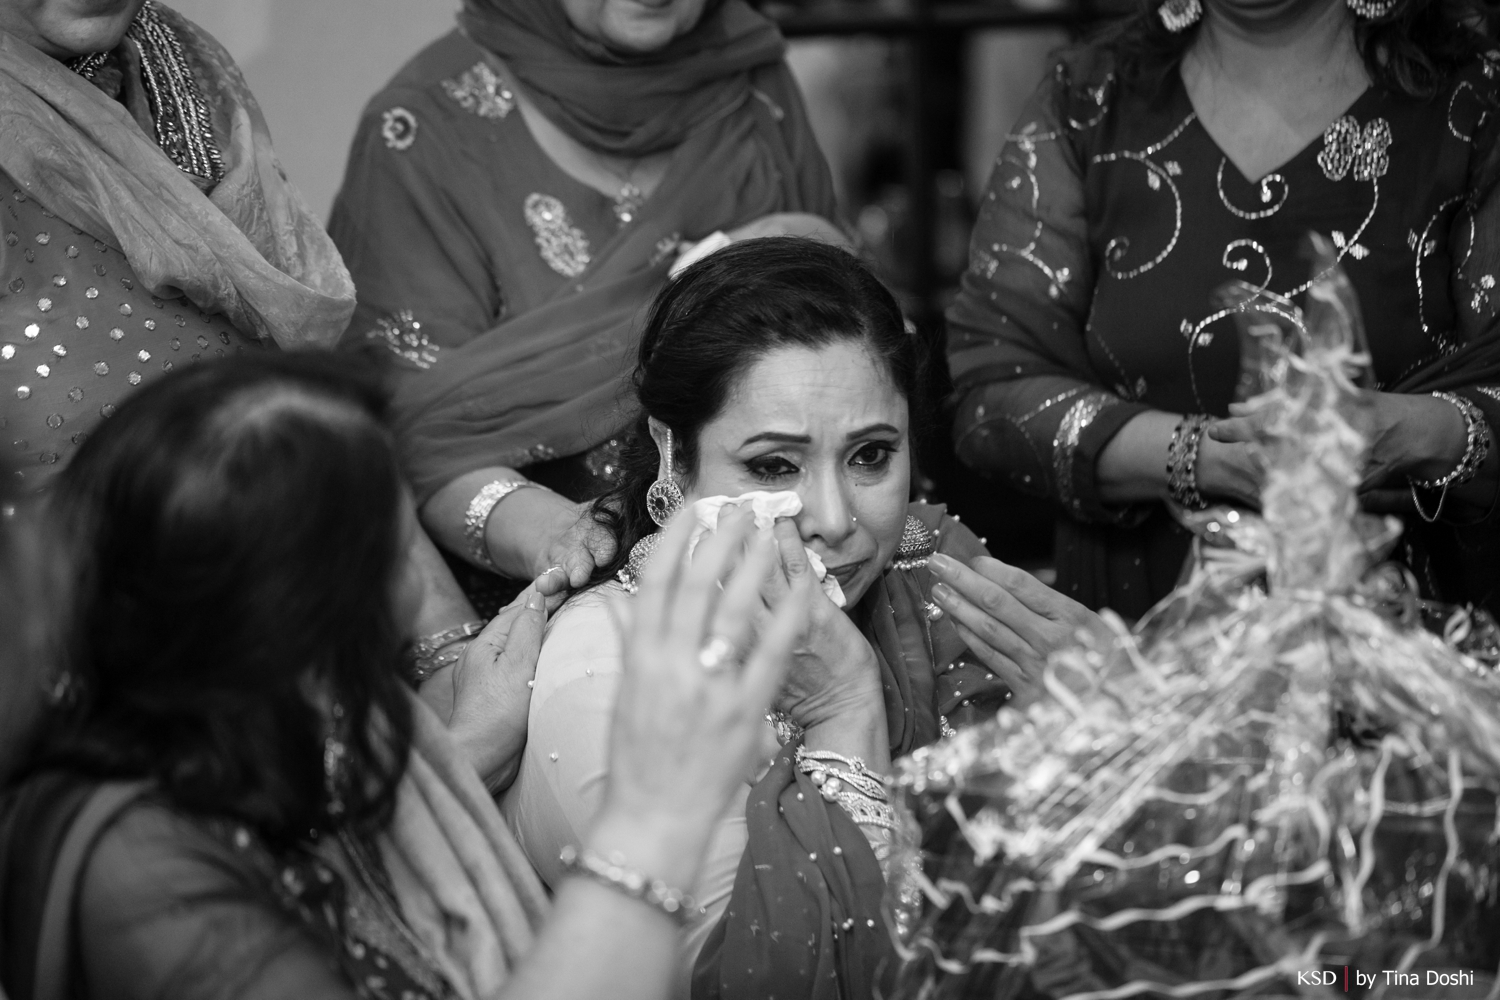 nj_south_asian_wedding_0046